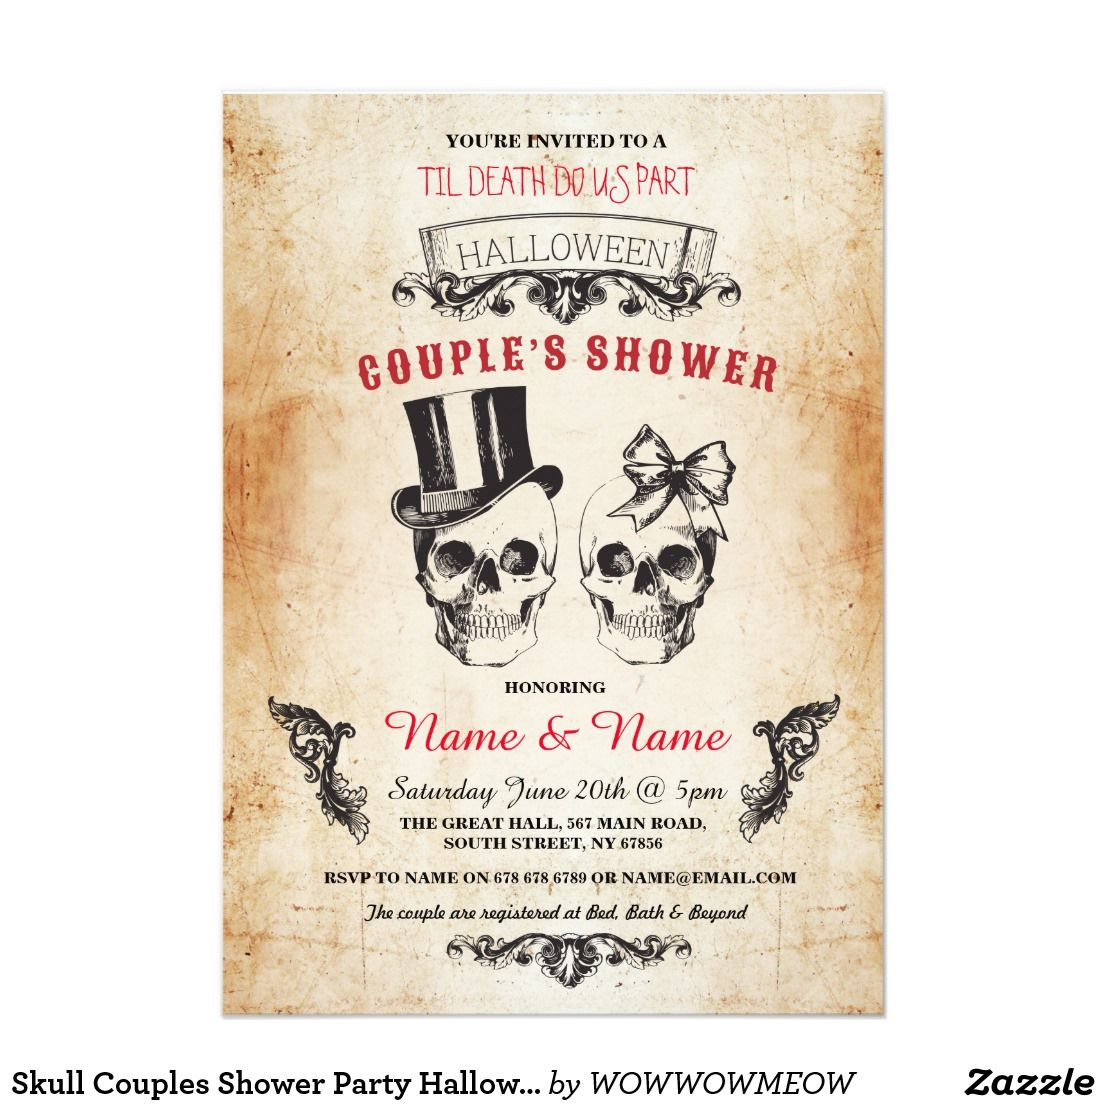 Skull Couples Shower Party Halloween Gothic Invite   my wedding ...